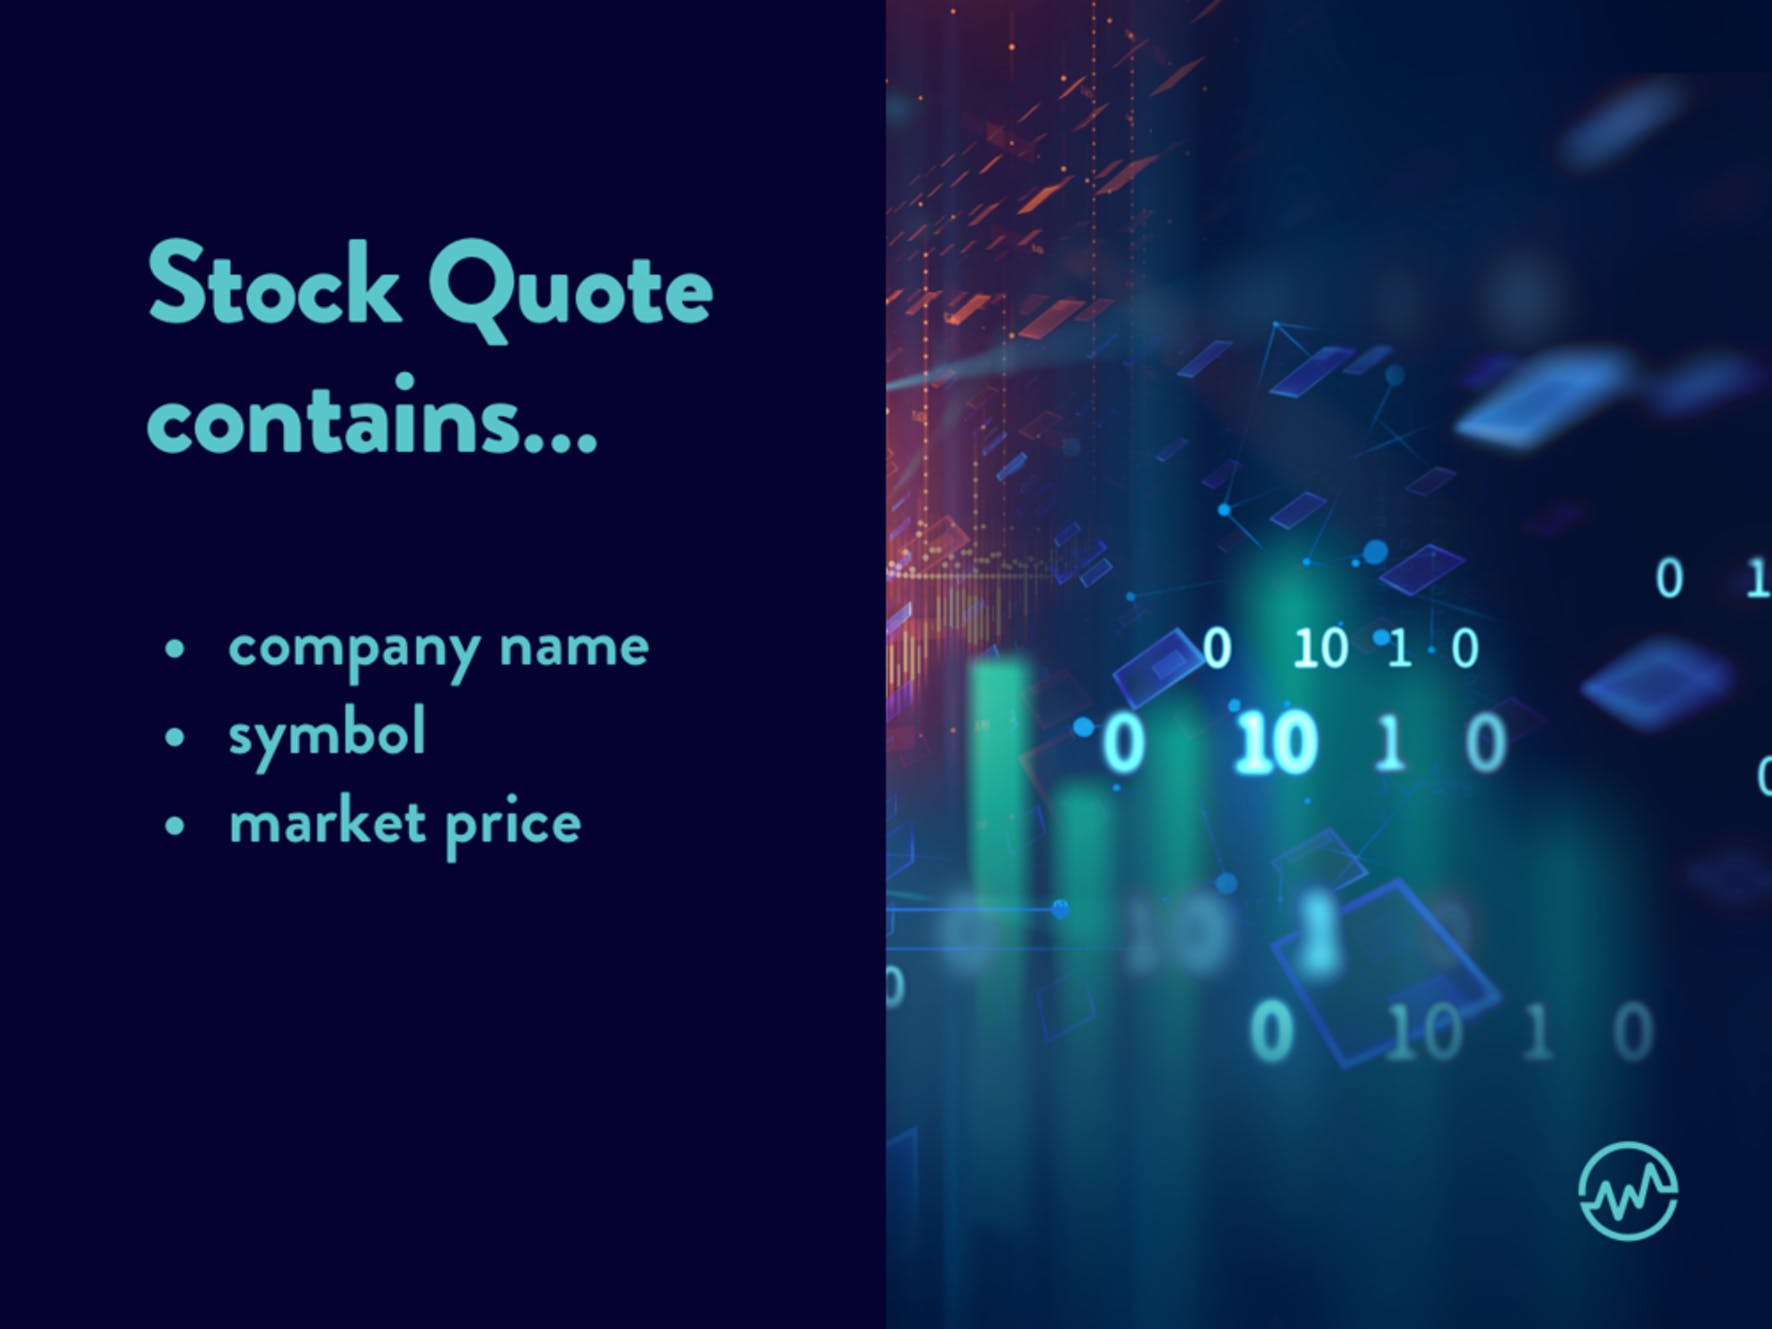 In order to know how to read a stock, an investor must know the stock quote contains contains a company name, symbol and market price